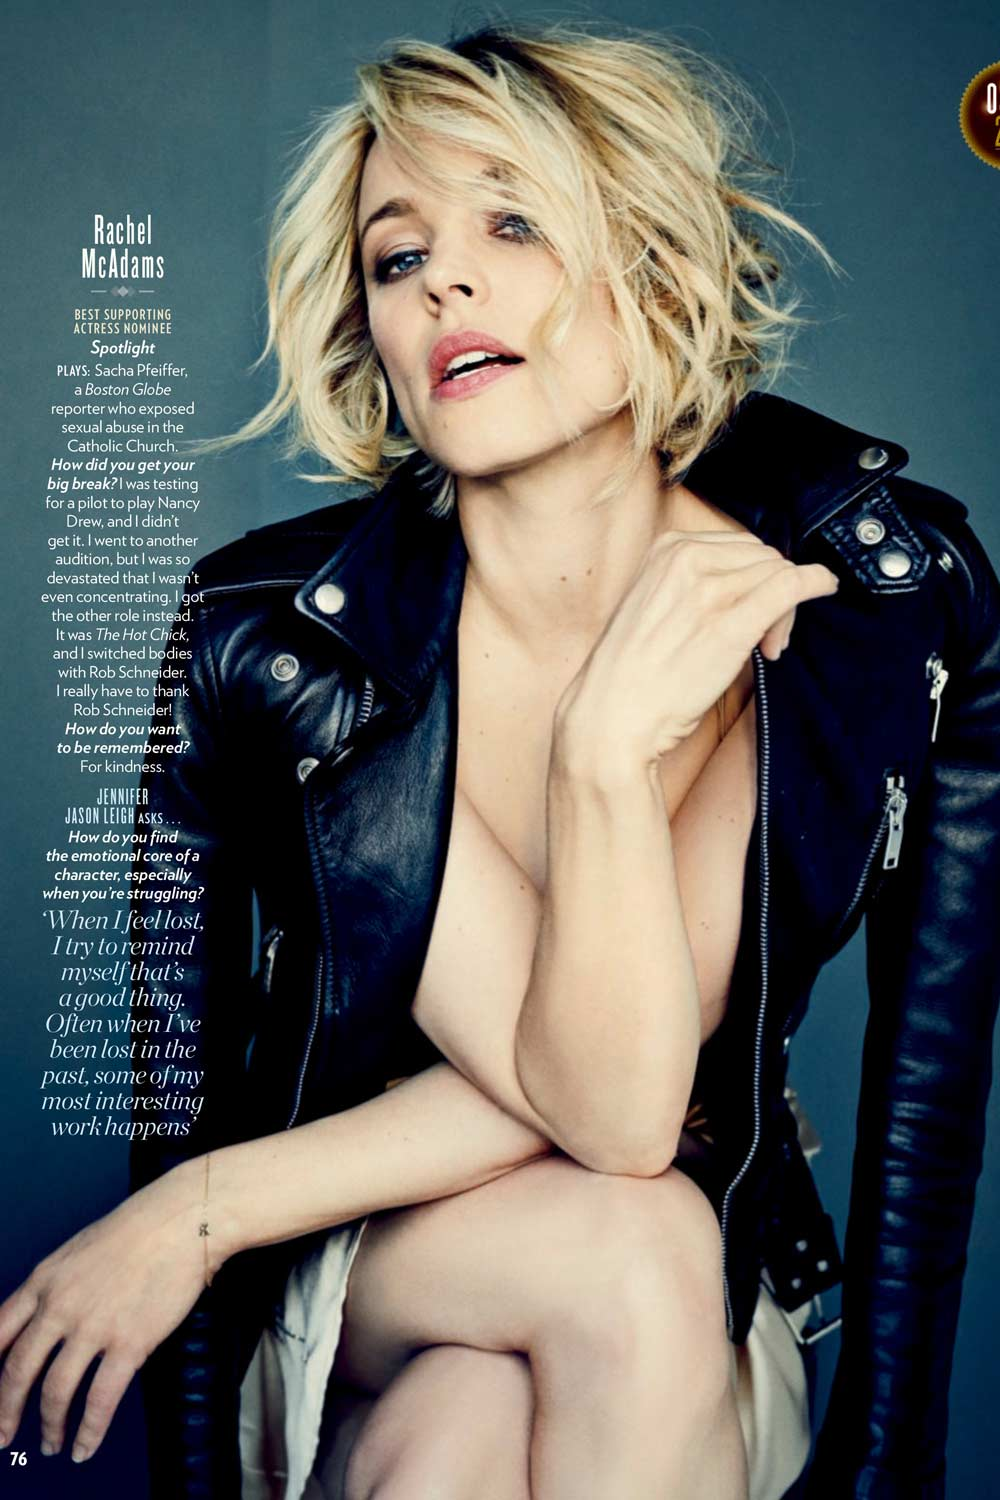 Rachel McAdams in People Magazine